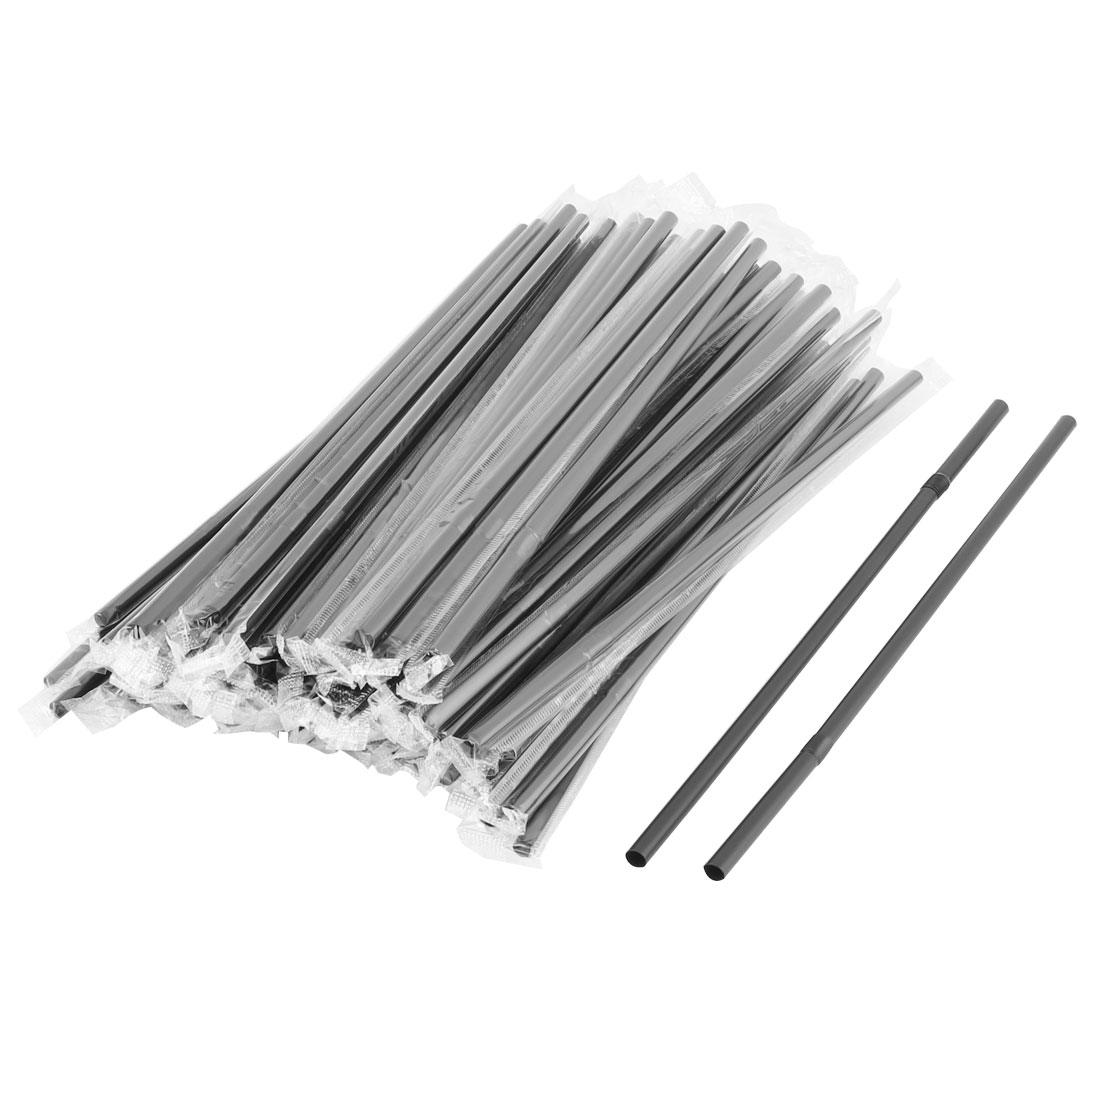 Household Kitchen PP Drinking Water Coffee Juice Tea Disposable Straws Black 100 Pcs